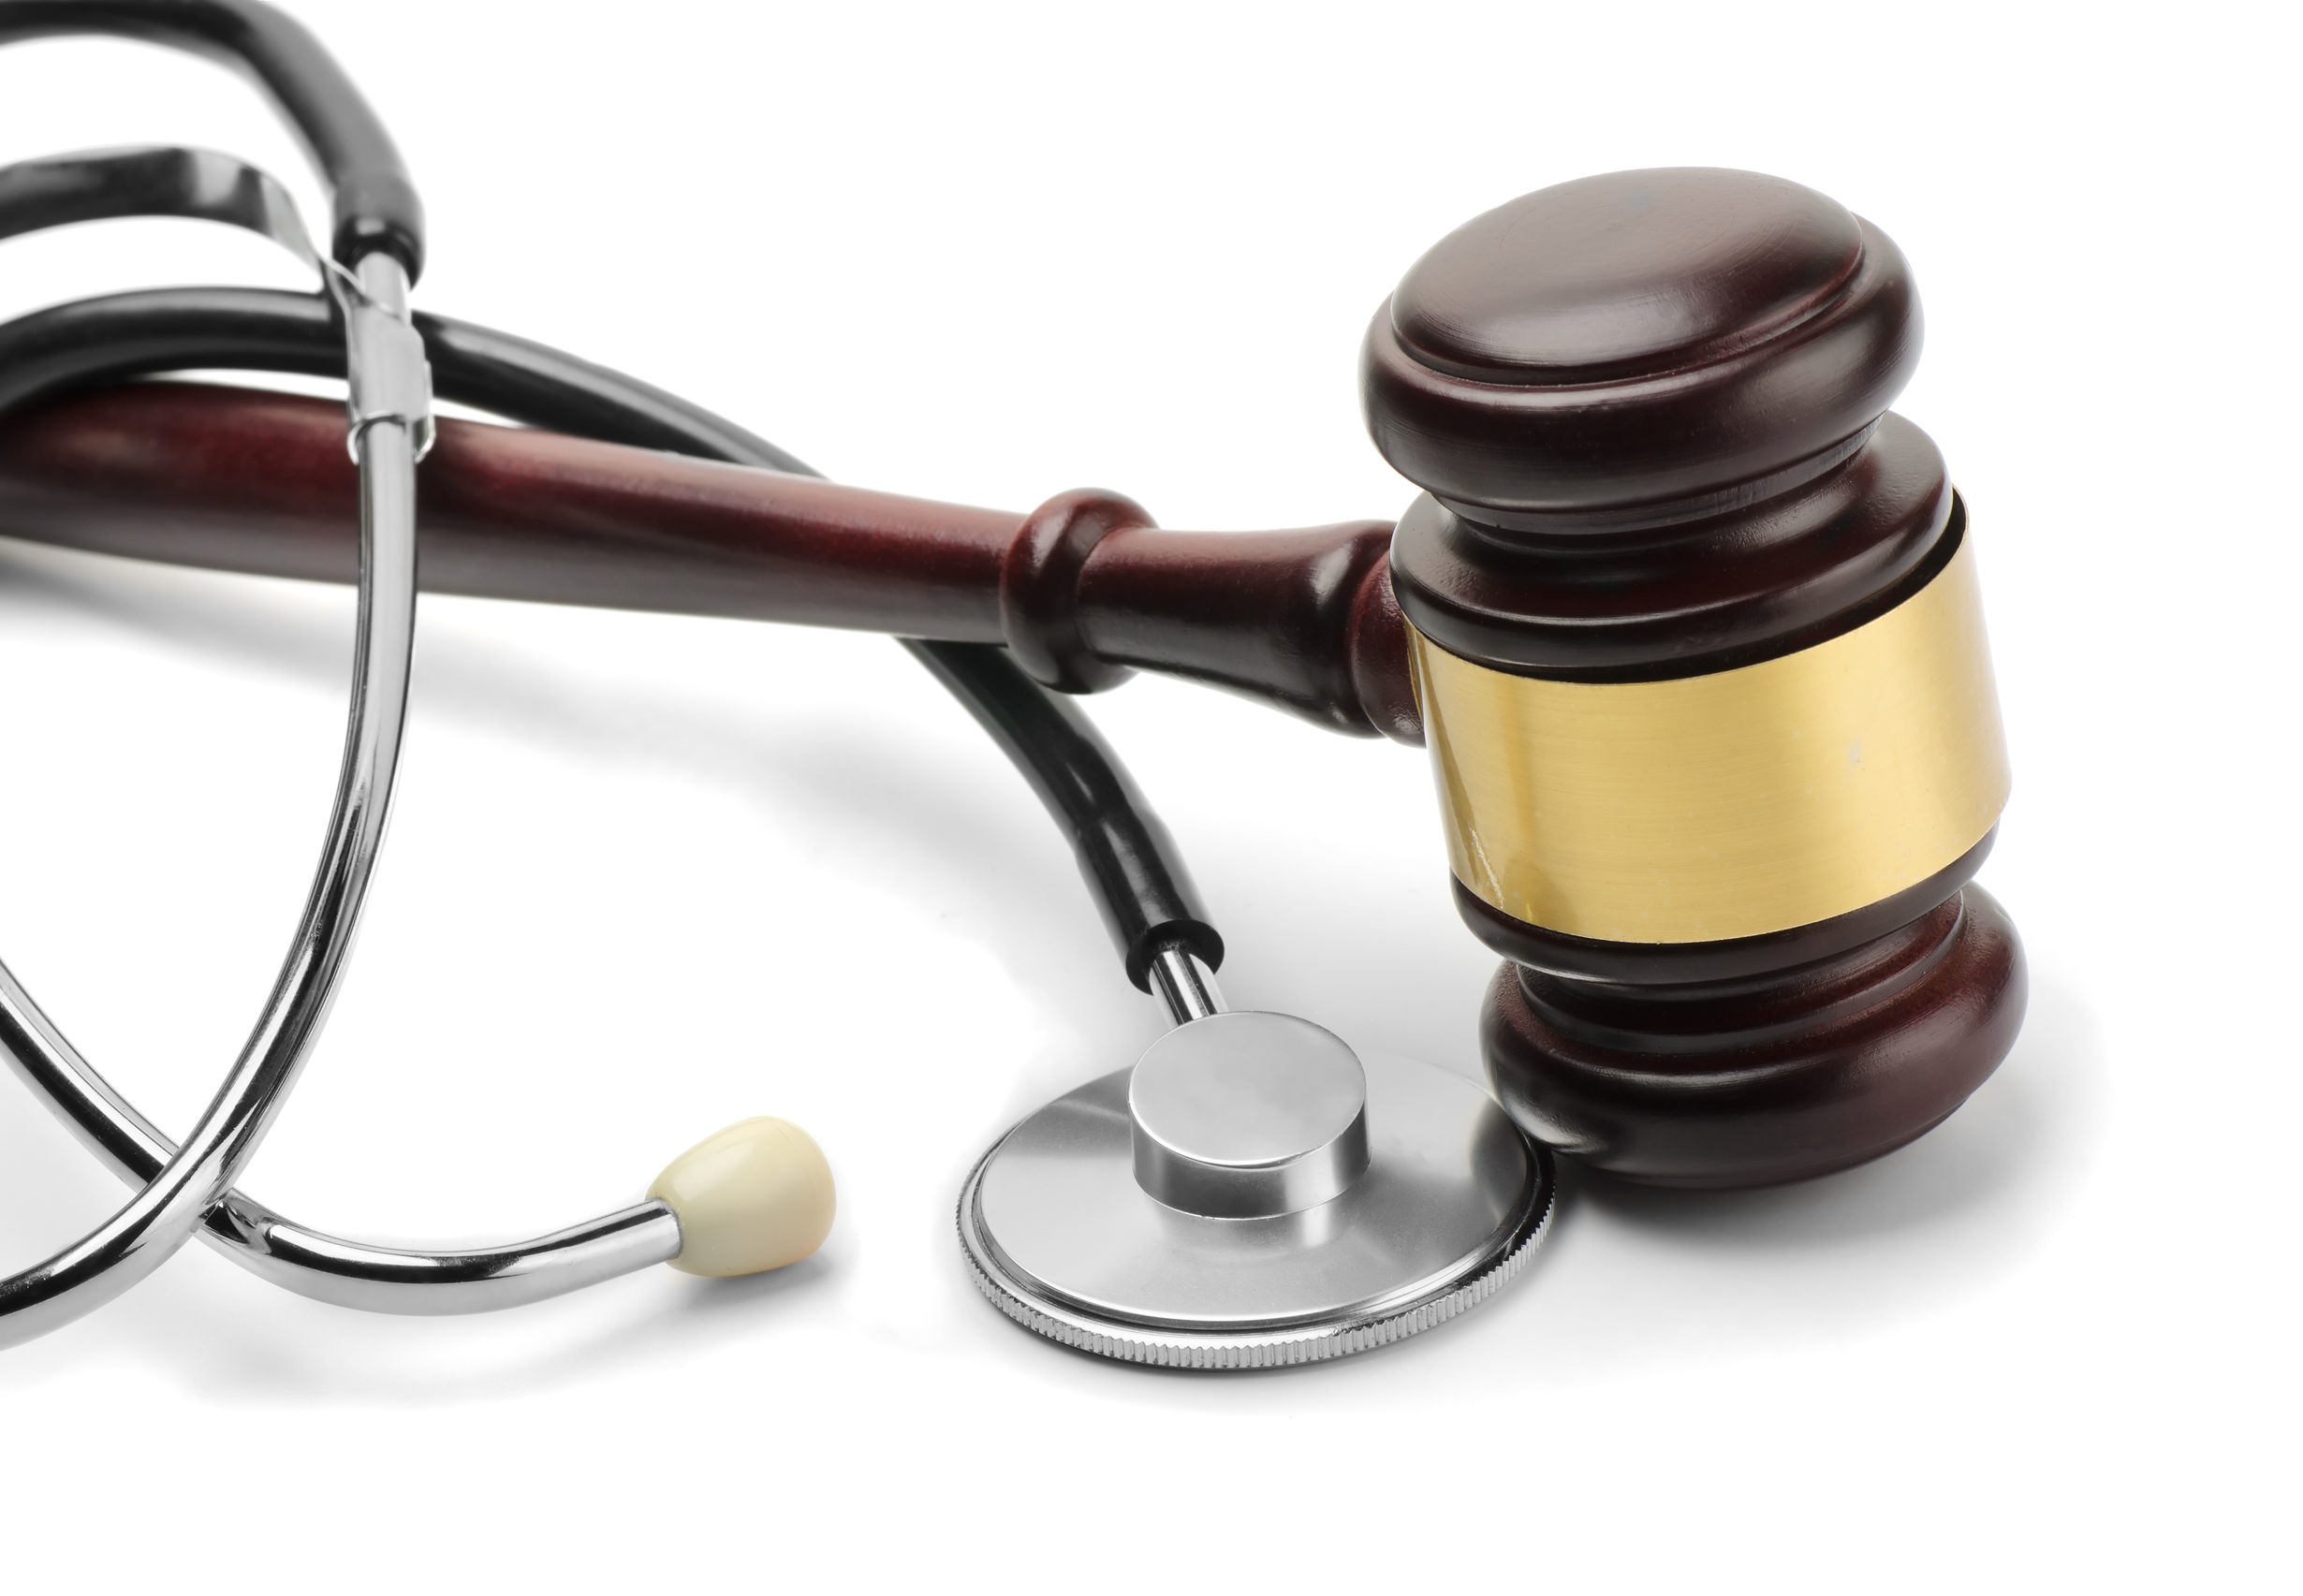 a discussion on the issue of medical malpractice In medical malpractice litigation, as in other torts (civil, non-criminal wrongs), the goal is to provide equitable treatment under similar circumstances to similar individuals in different trials an additional goal should be to provide similar treatment for similar degrees of injuries in different cases.